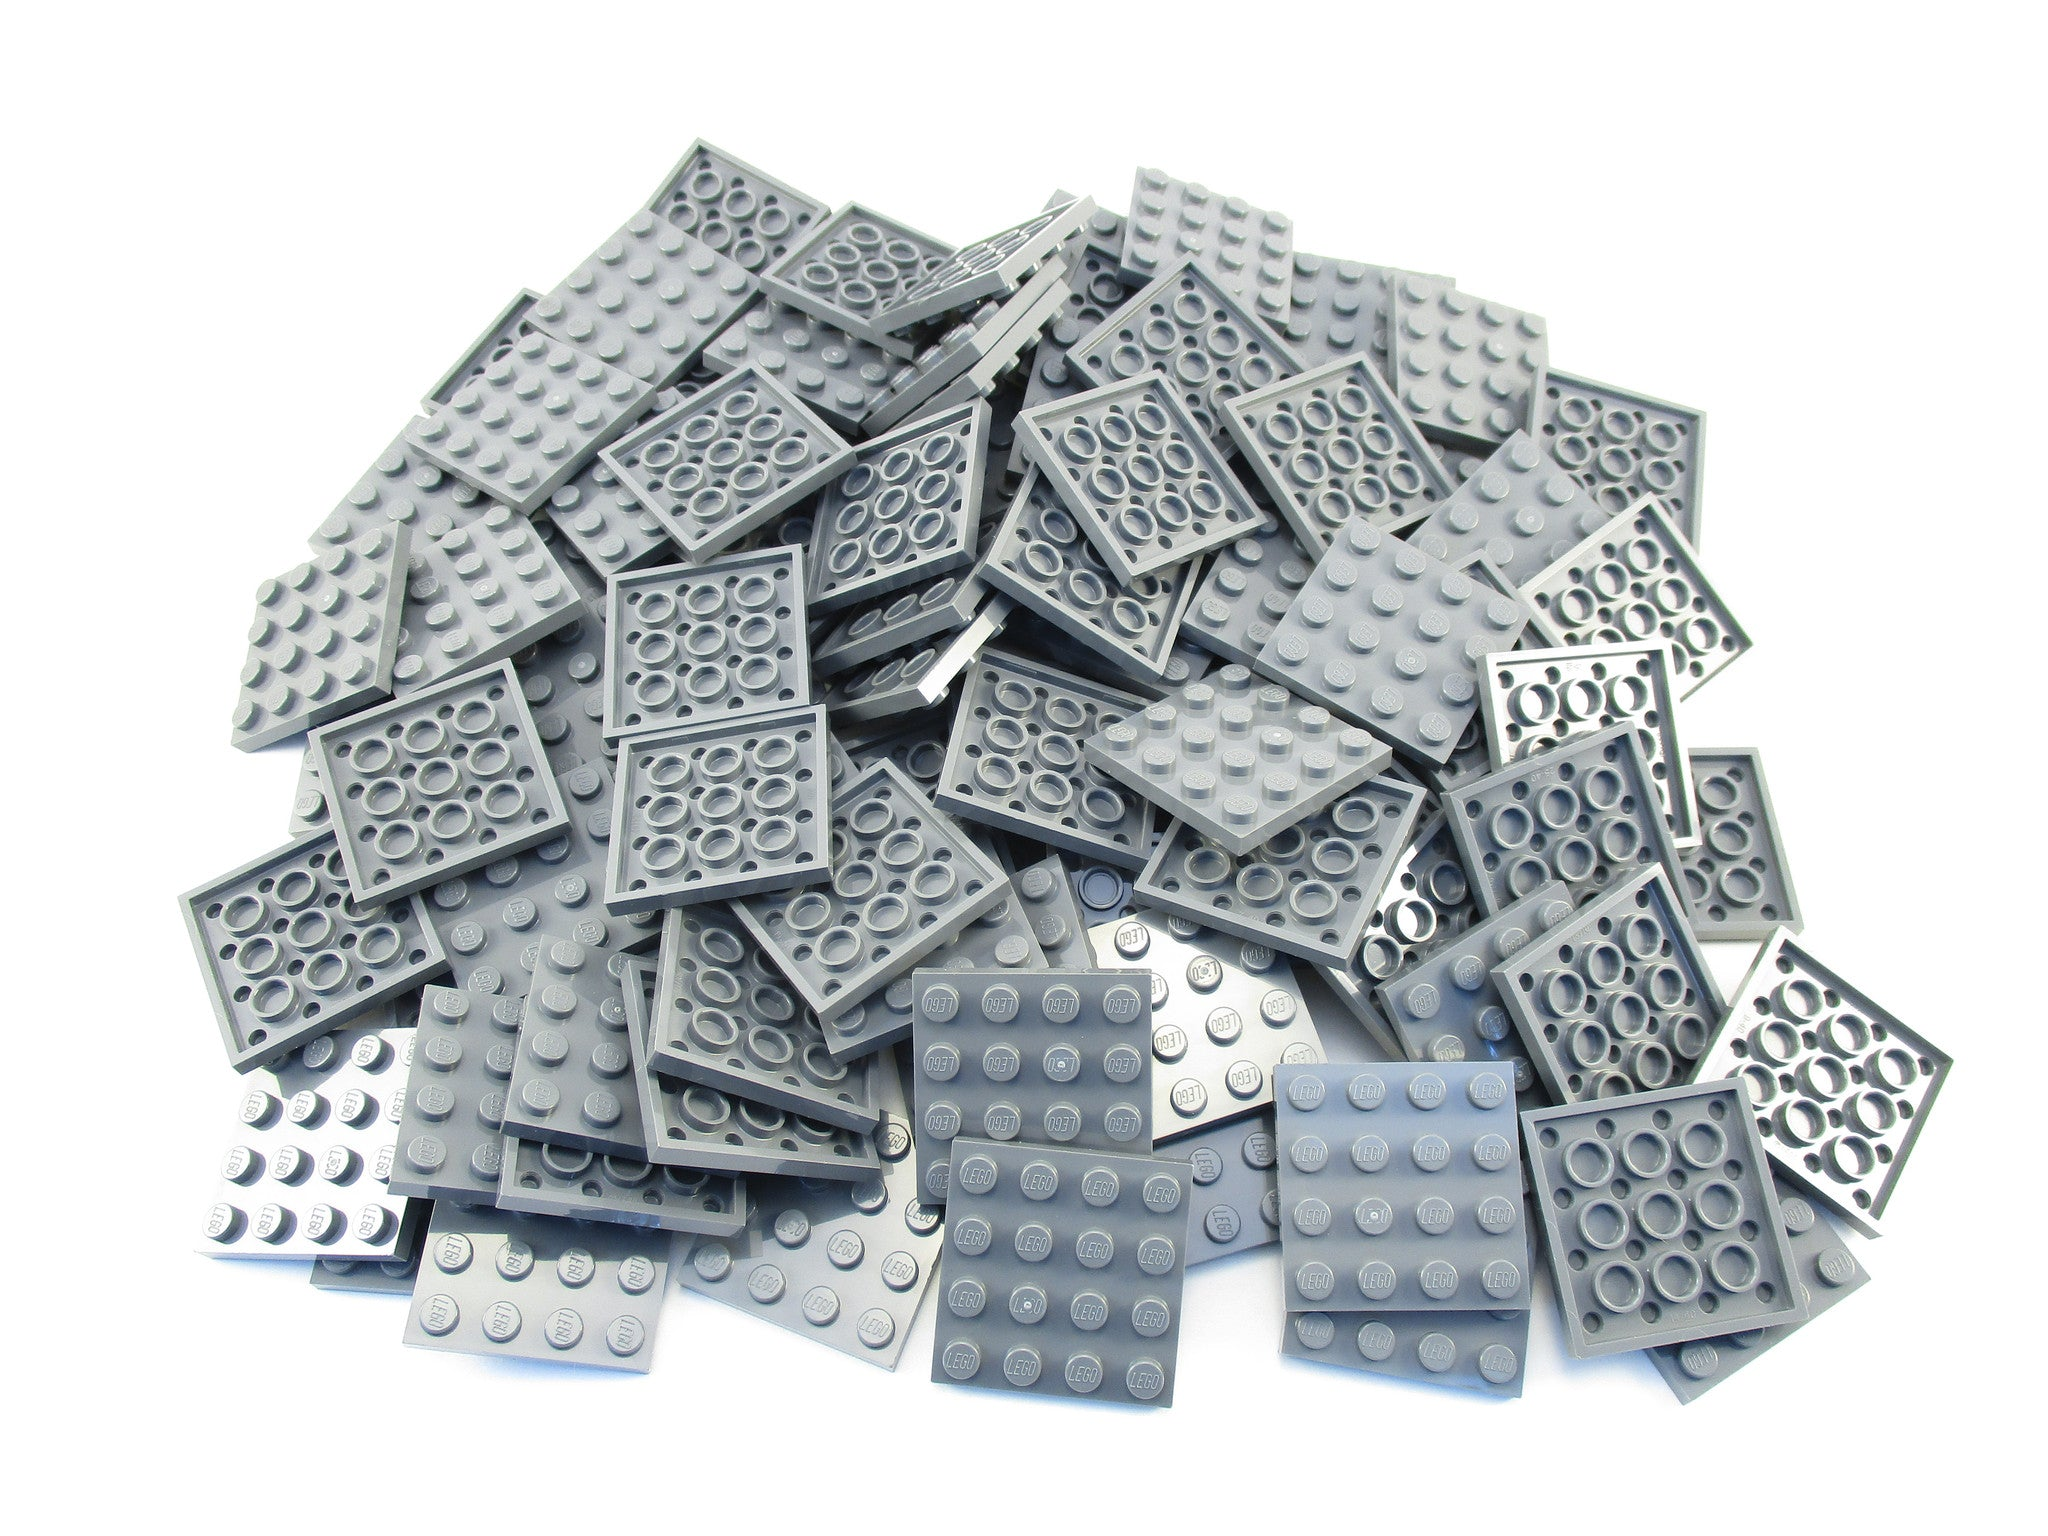 LEGO Dark Bluish Grey Plate 4x4 Lot of 100 Parts Pieces 3031 Gray